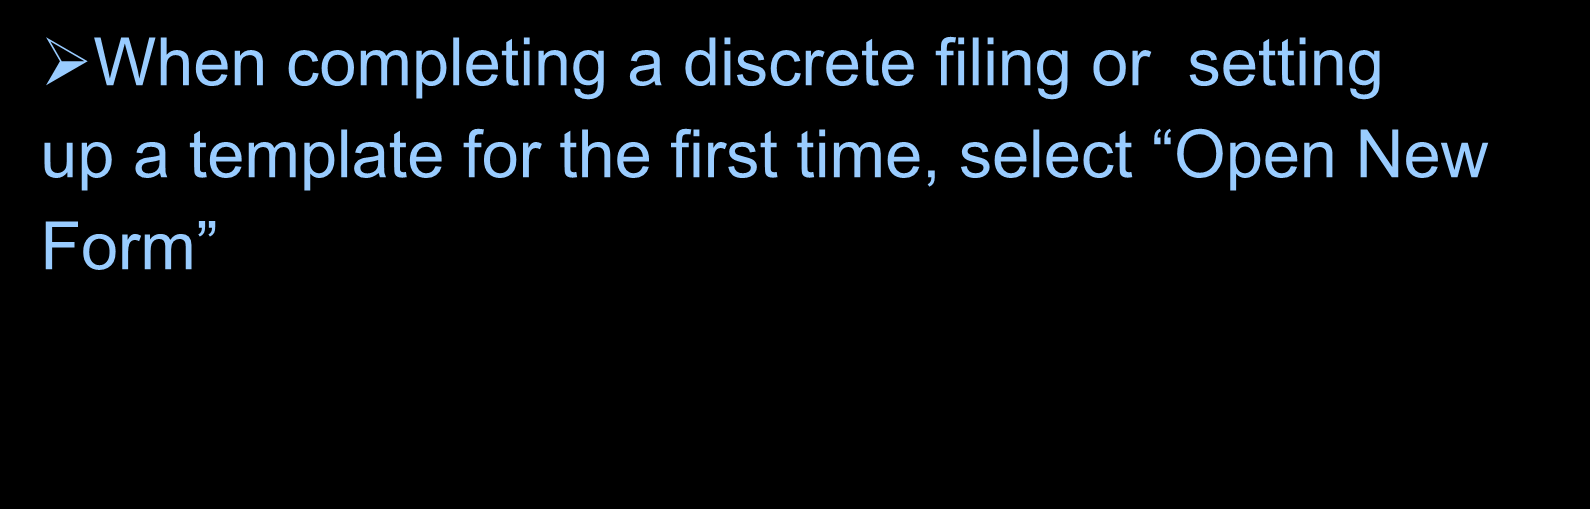 Getting Started When completing a discrete filing or